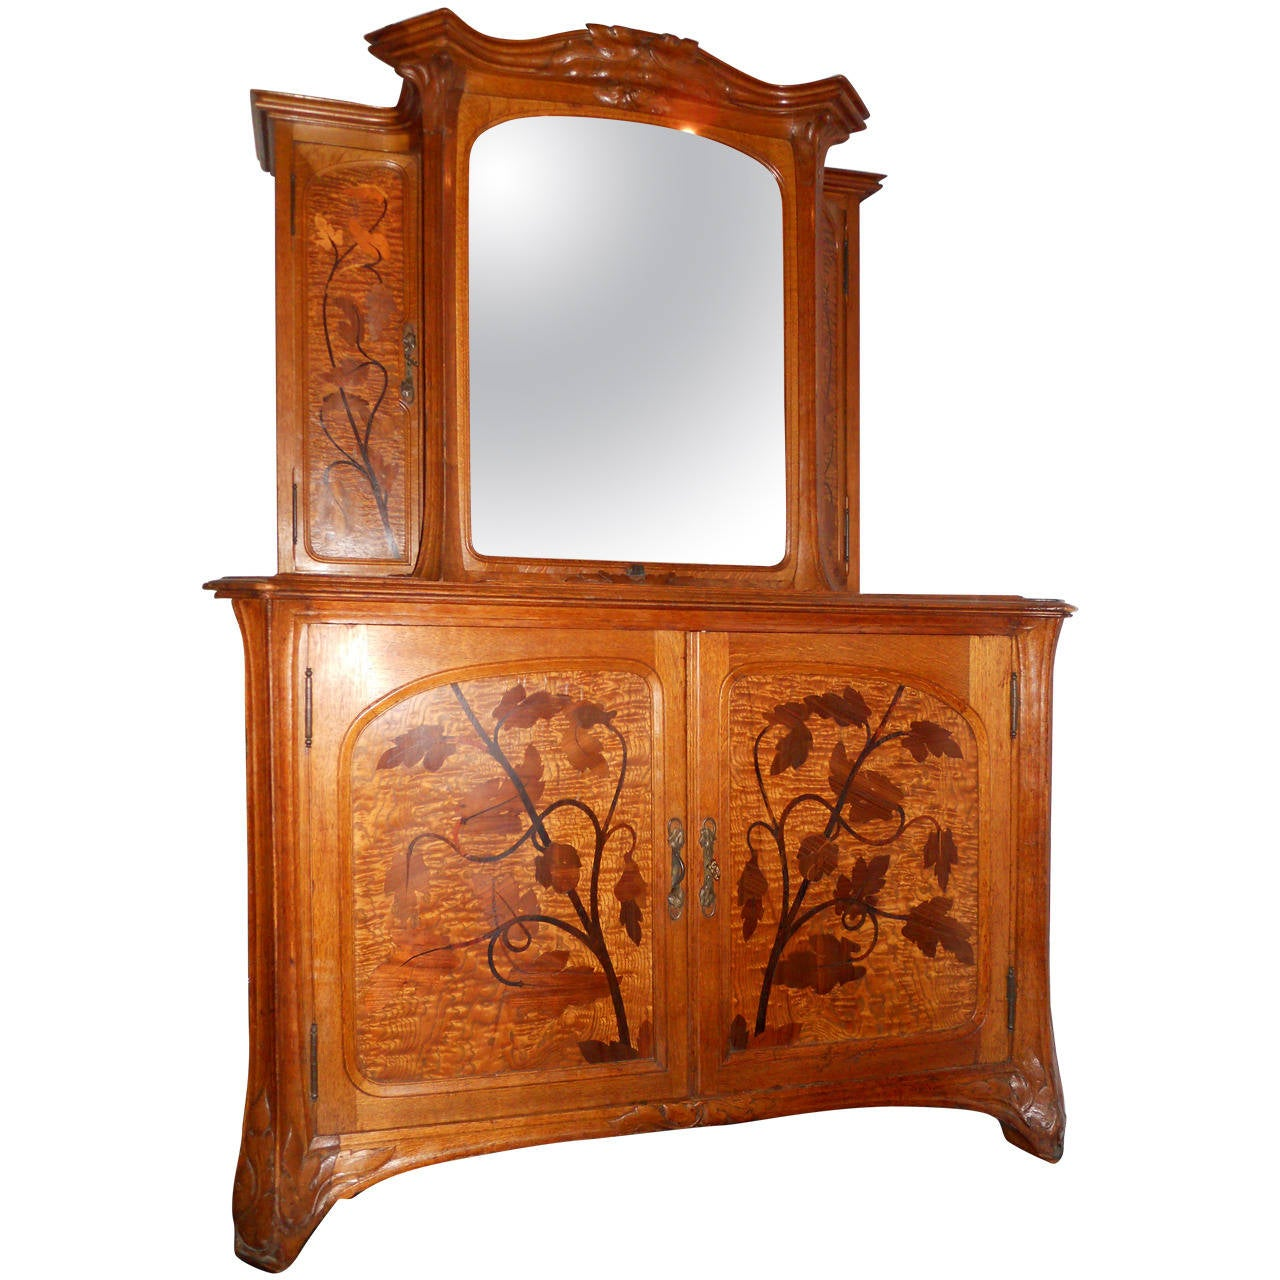 Louis-Maurice-Alphonse Herold Marquetry Collector's Cabinet